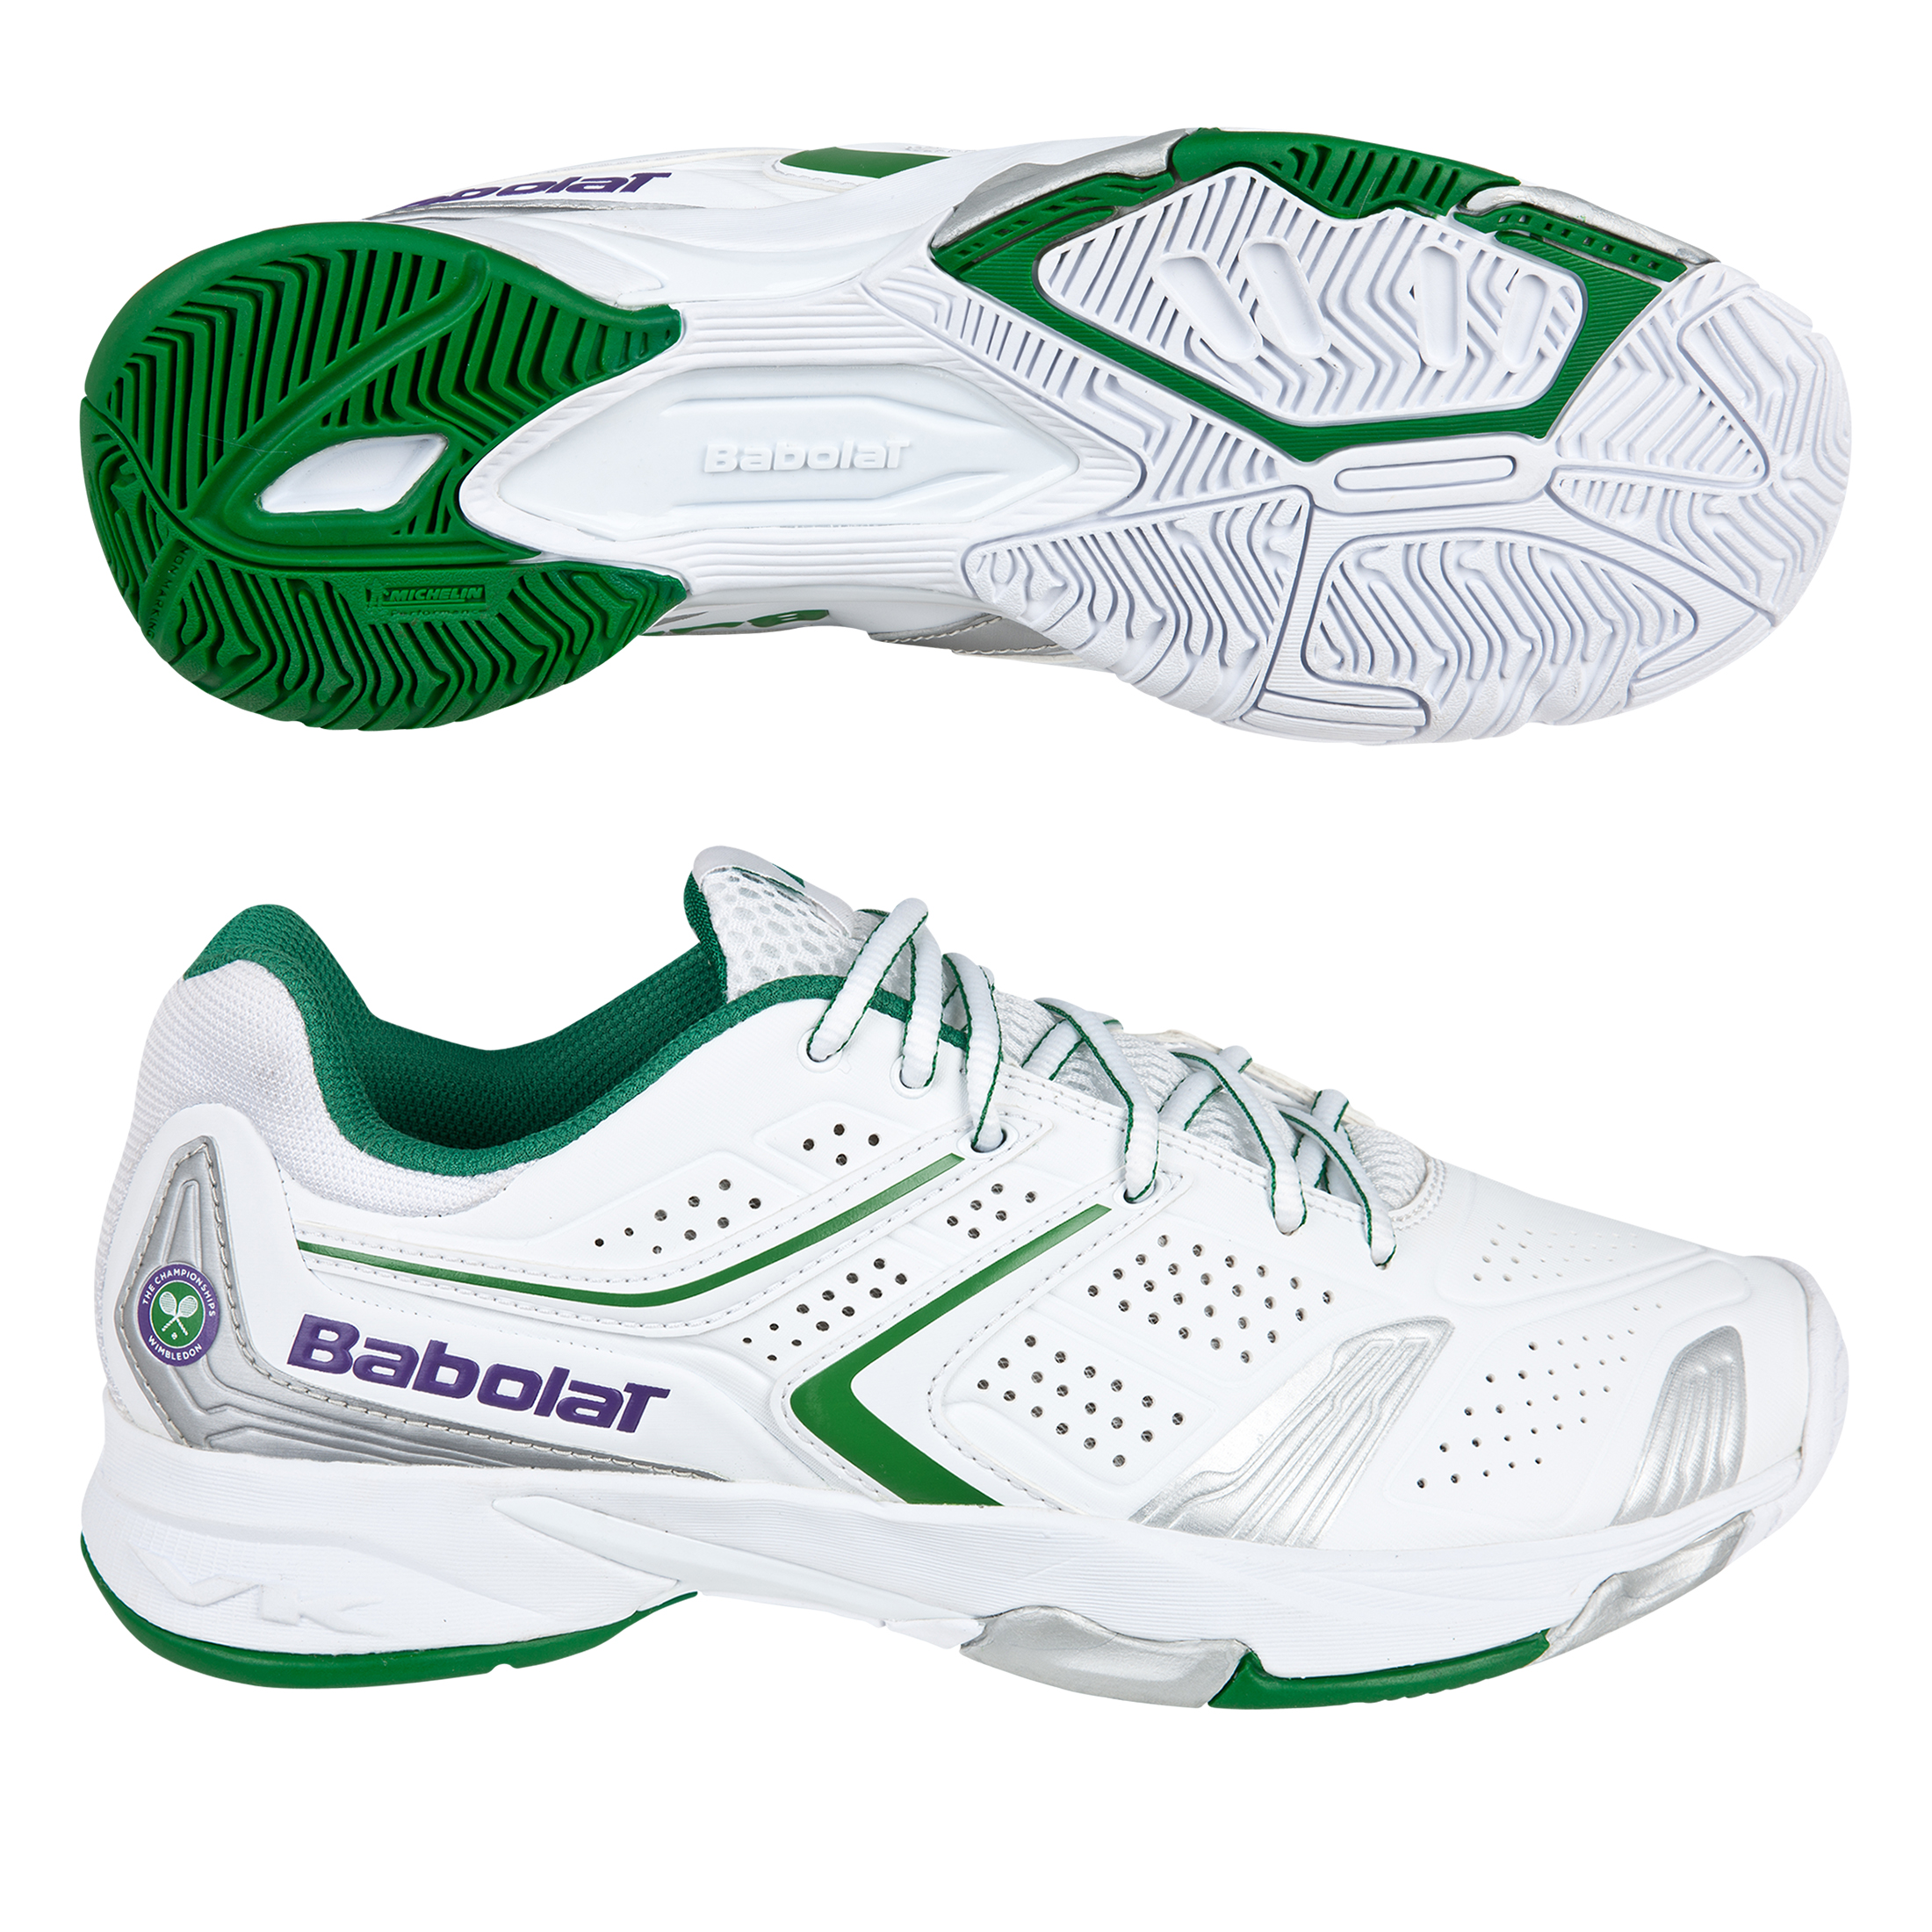 Wimbledon Drive 3 All Court Wimbledon Tennis Shoe